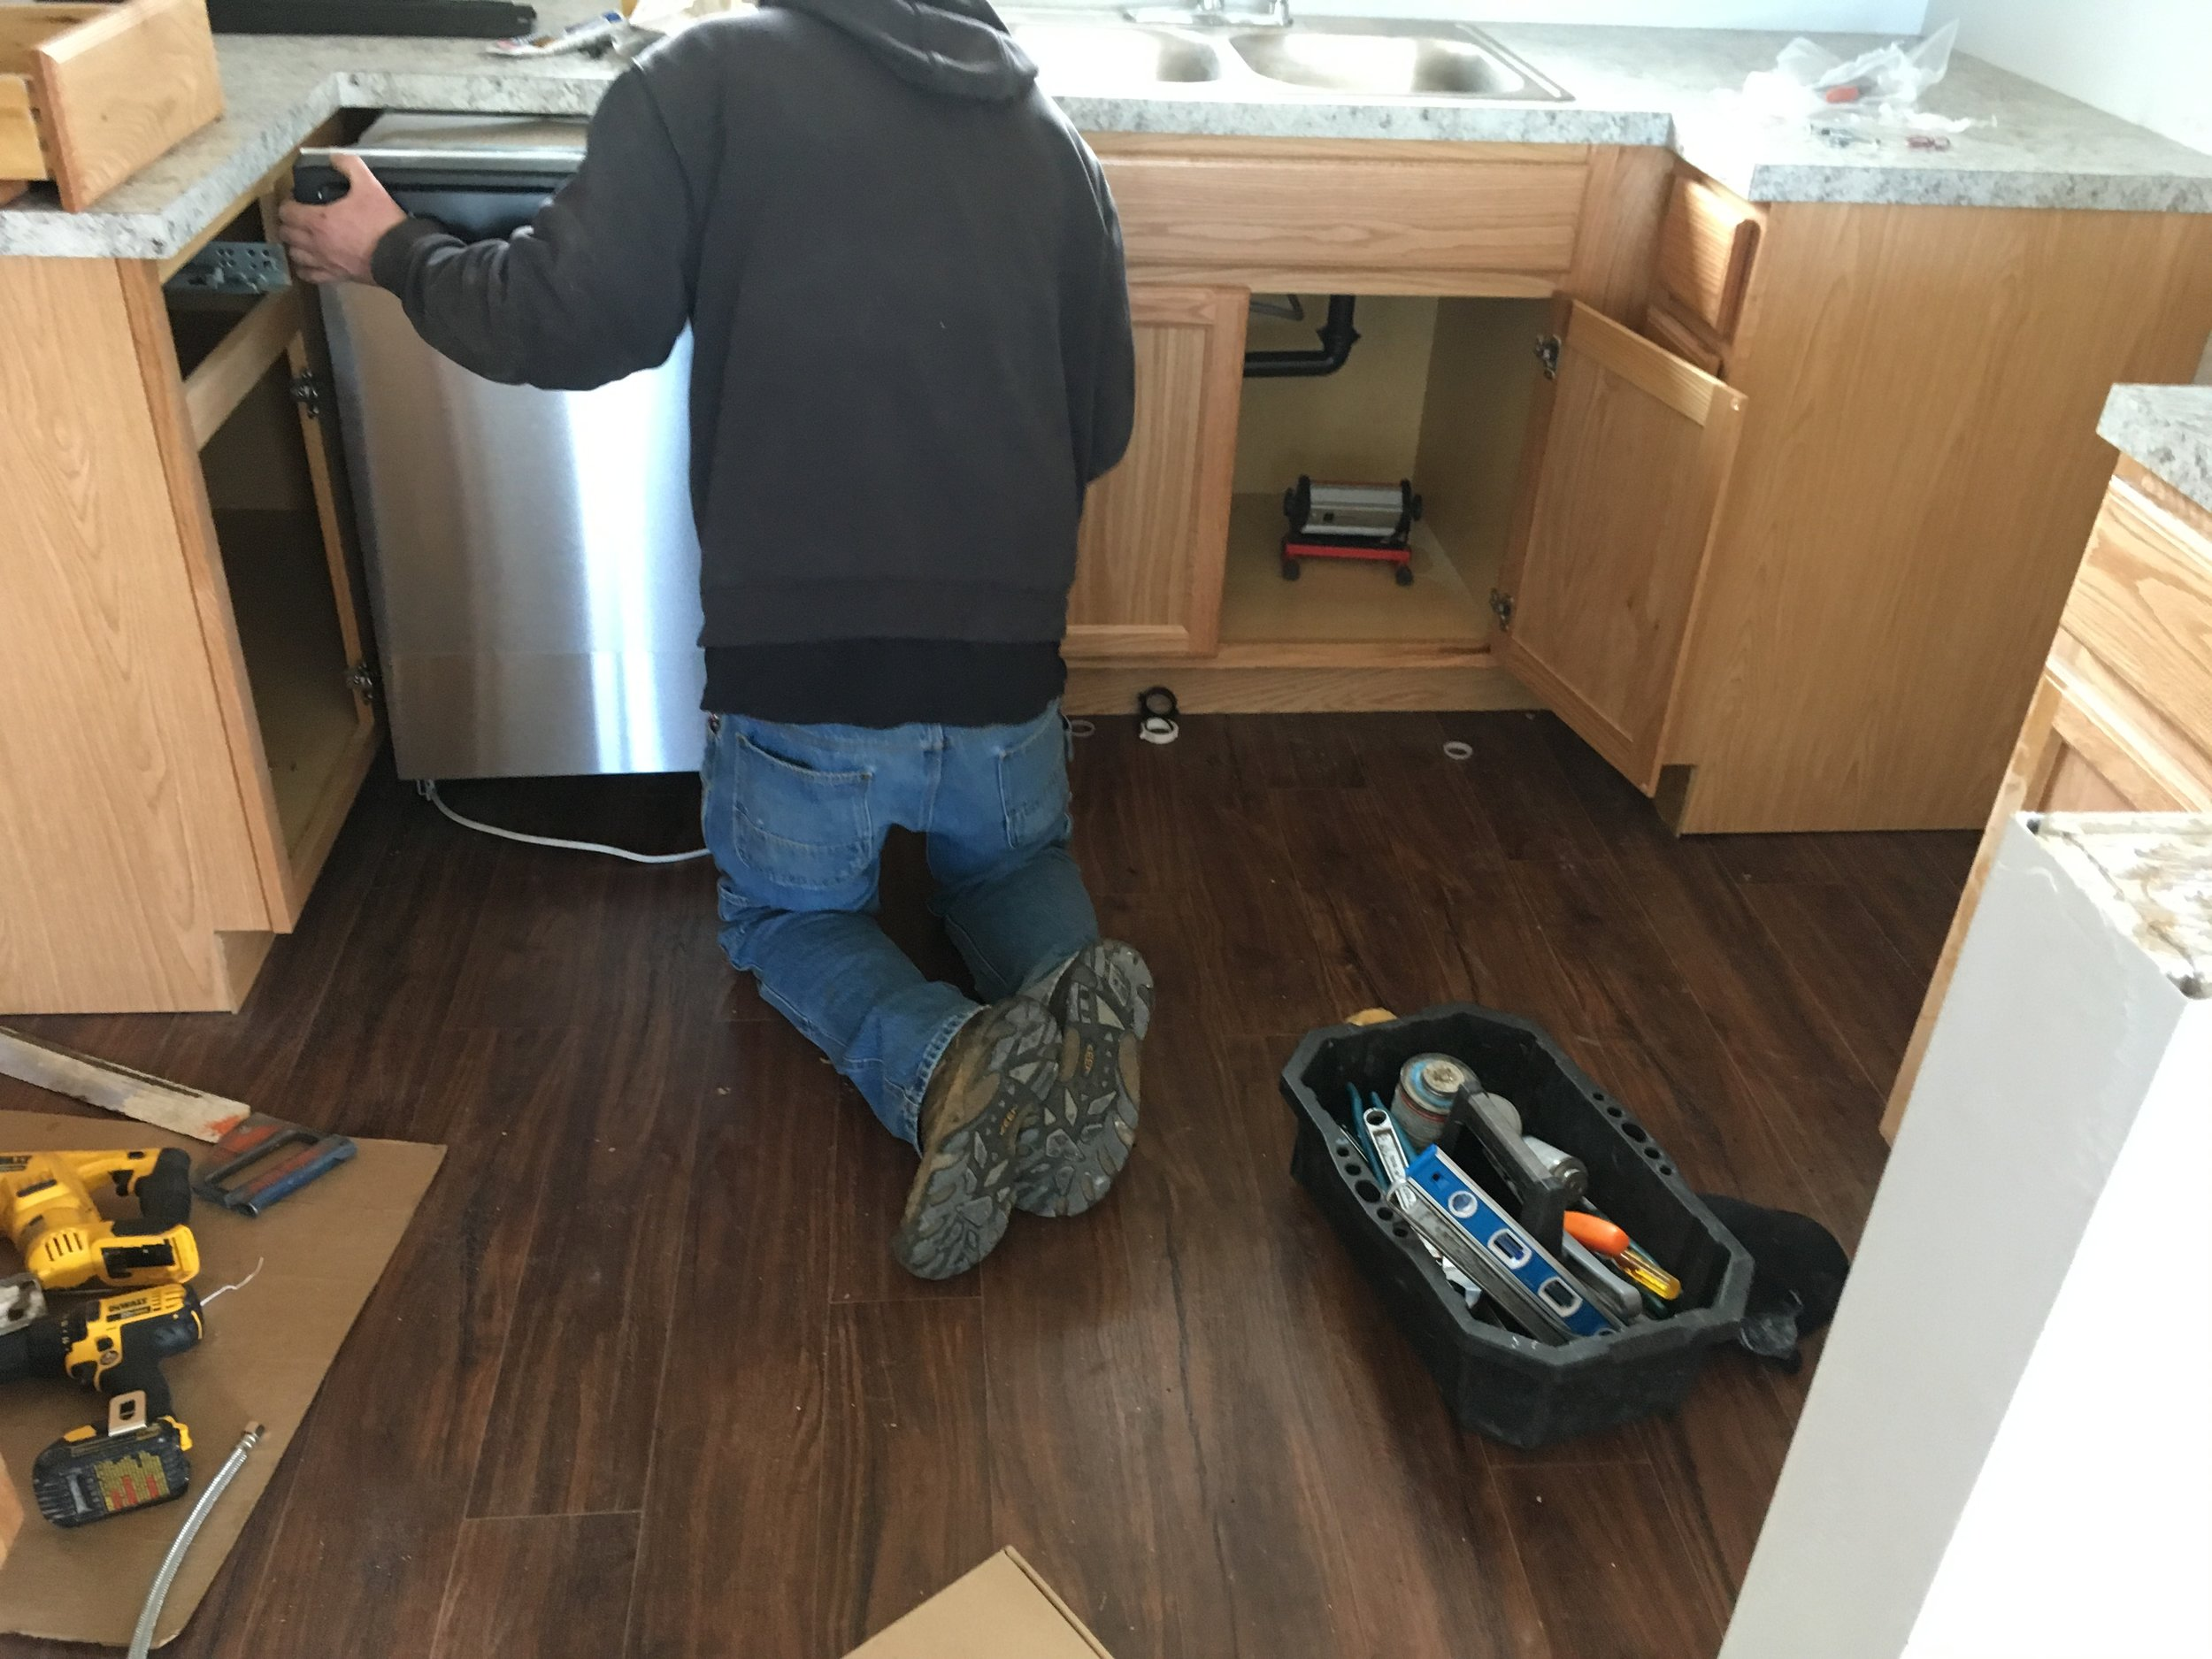 Our Plumber setting new stainless steel appliances.